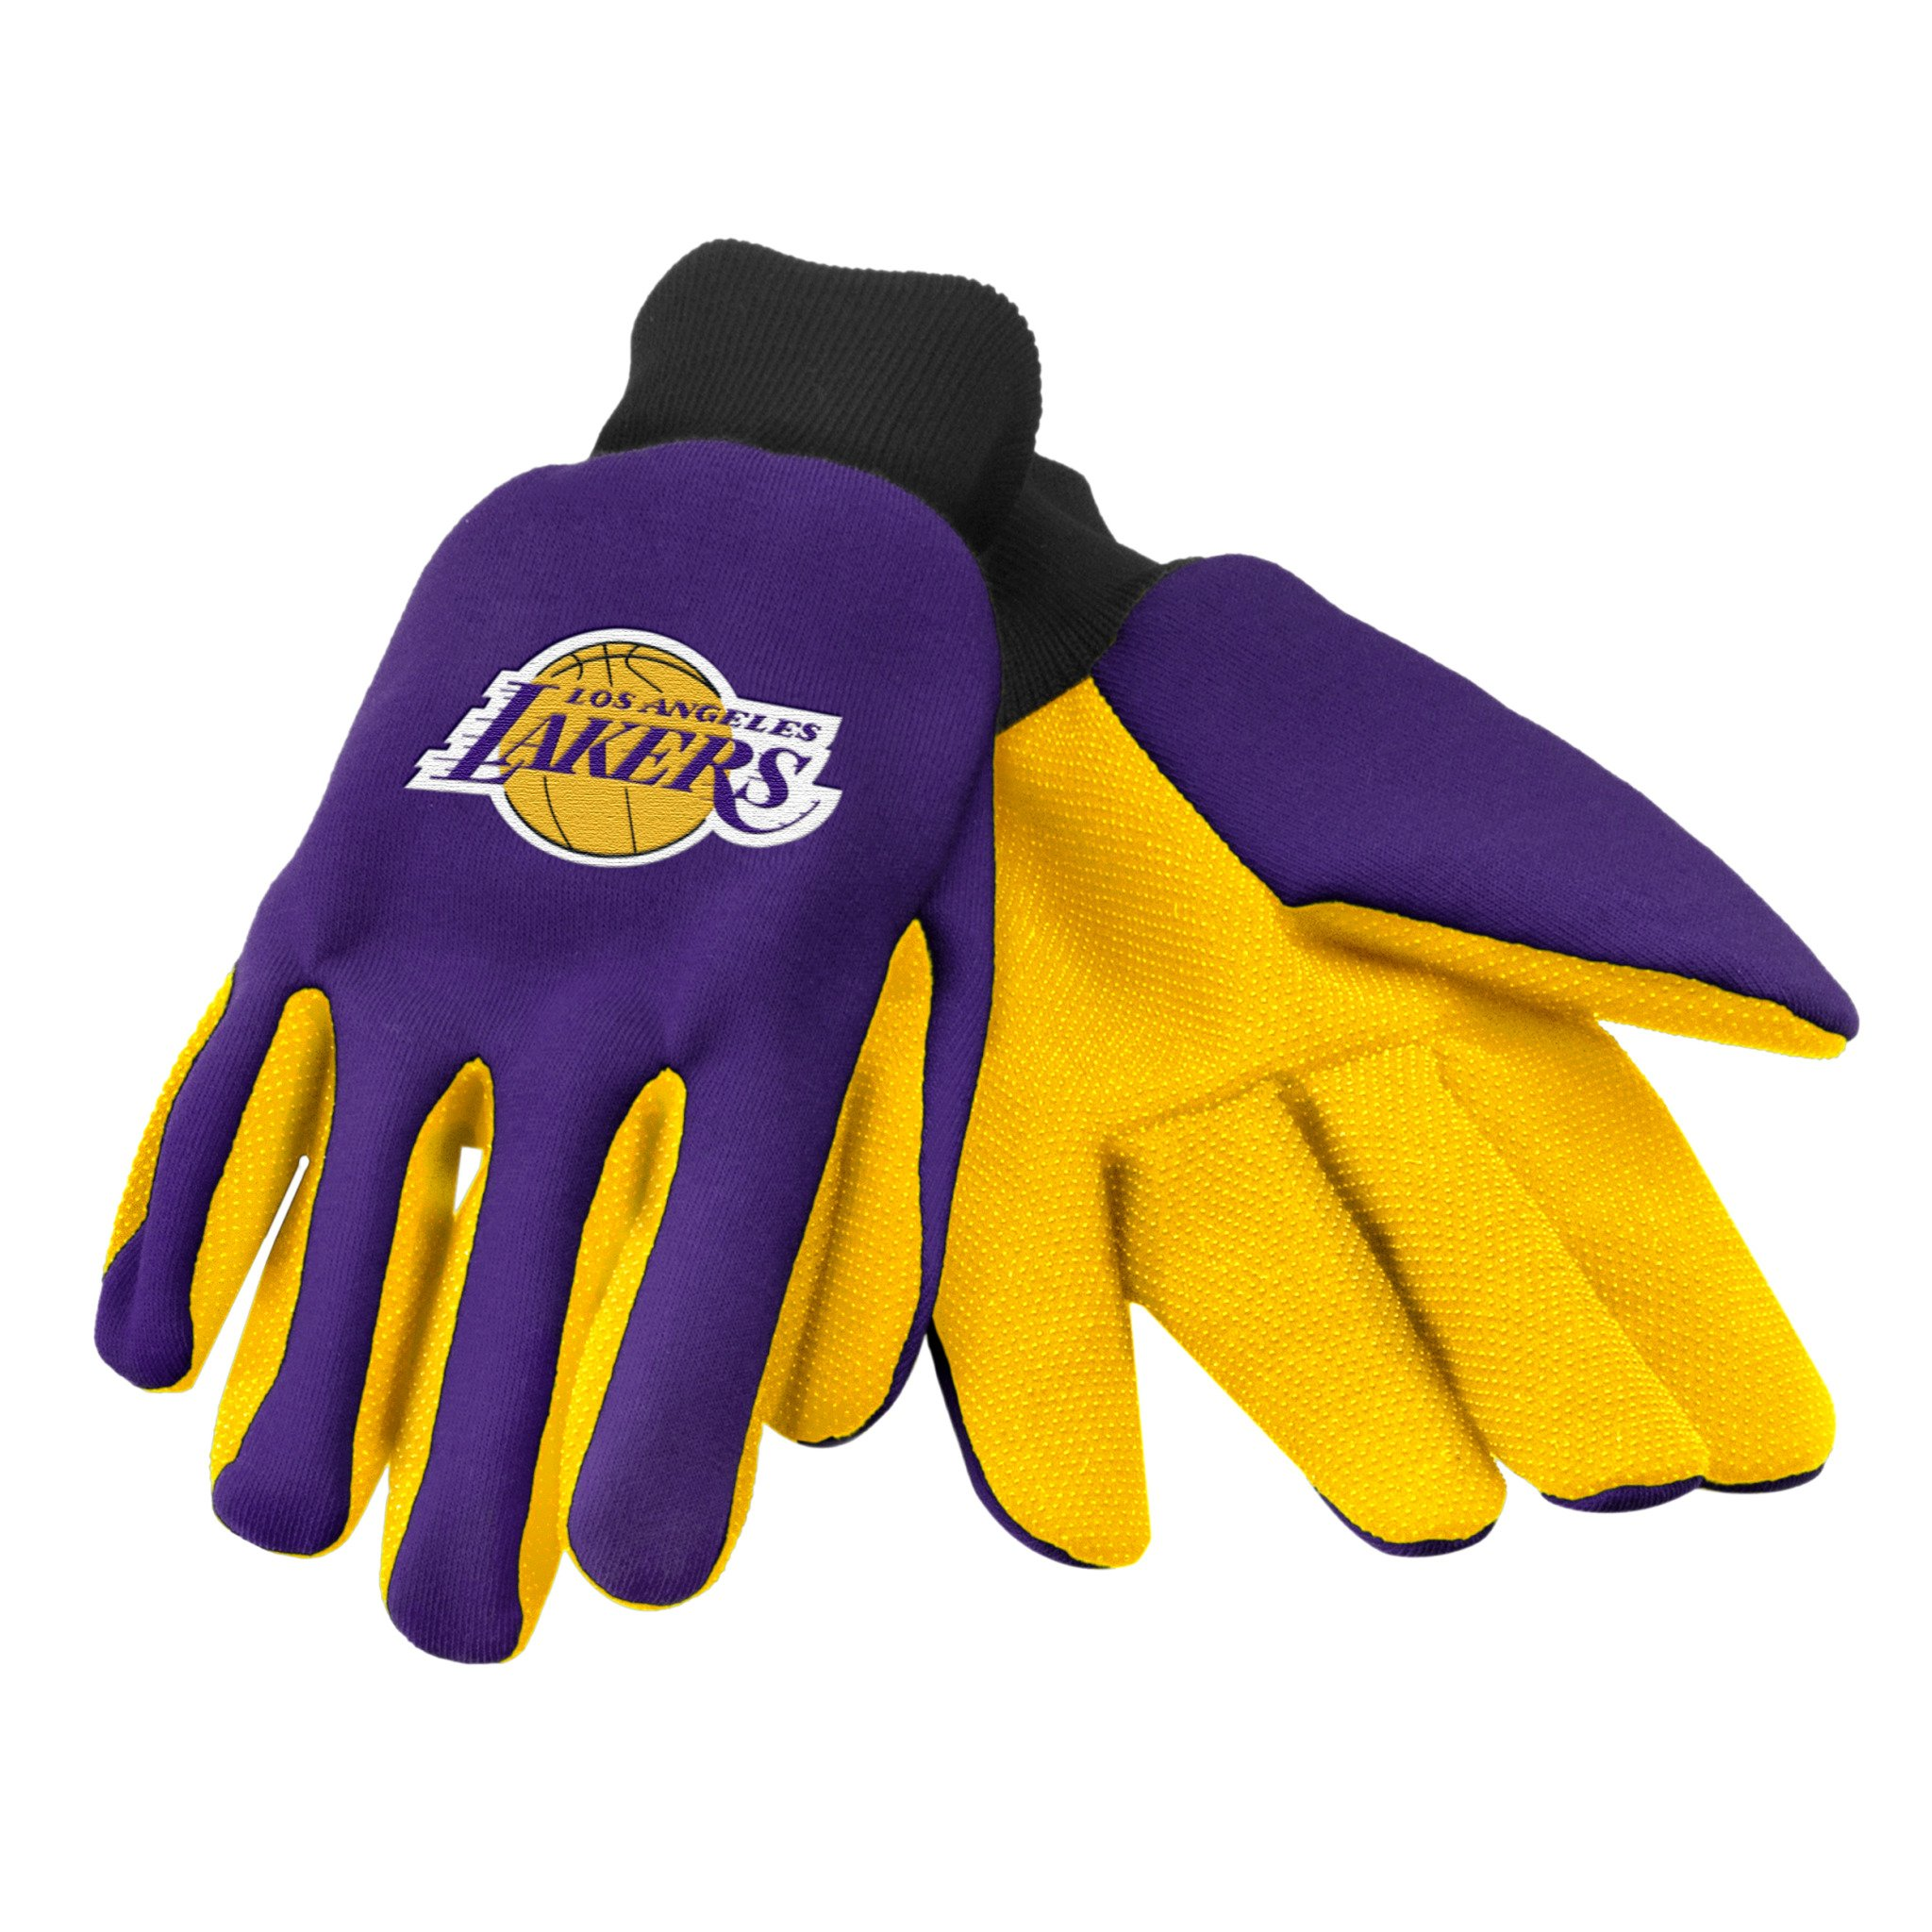 Los Angeles Lakers 2015 Utility Glove - Colored Palm